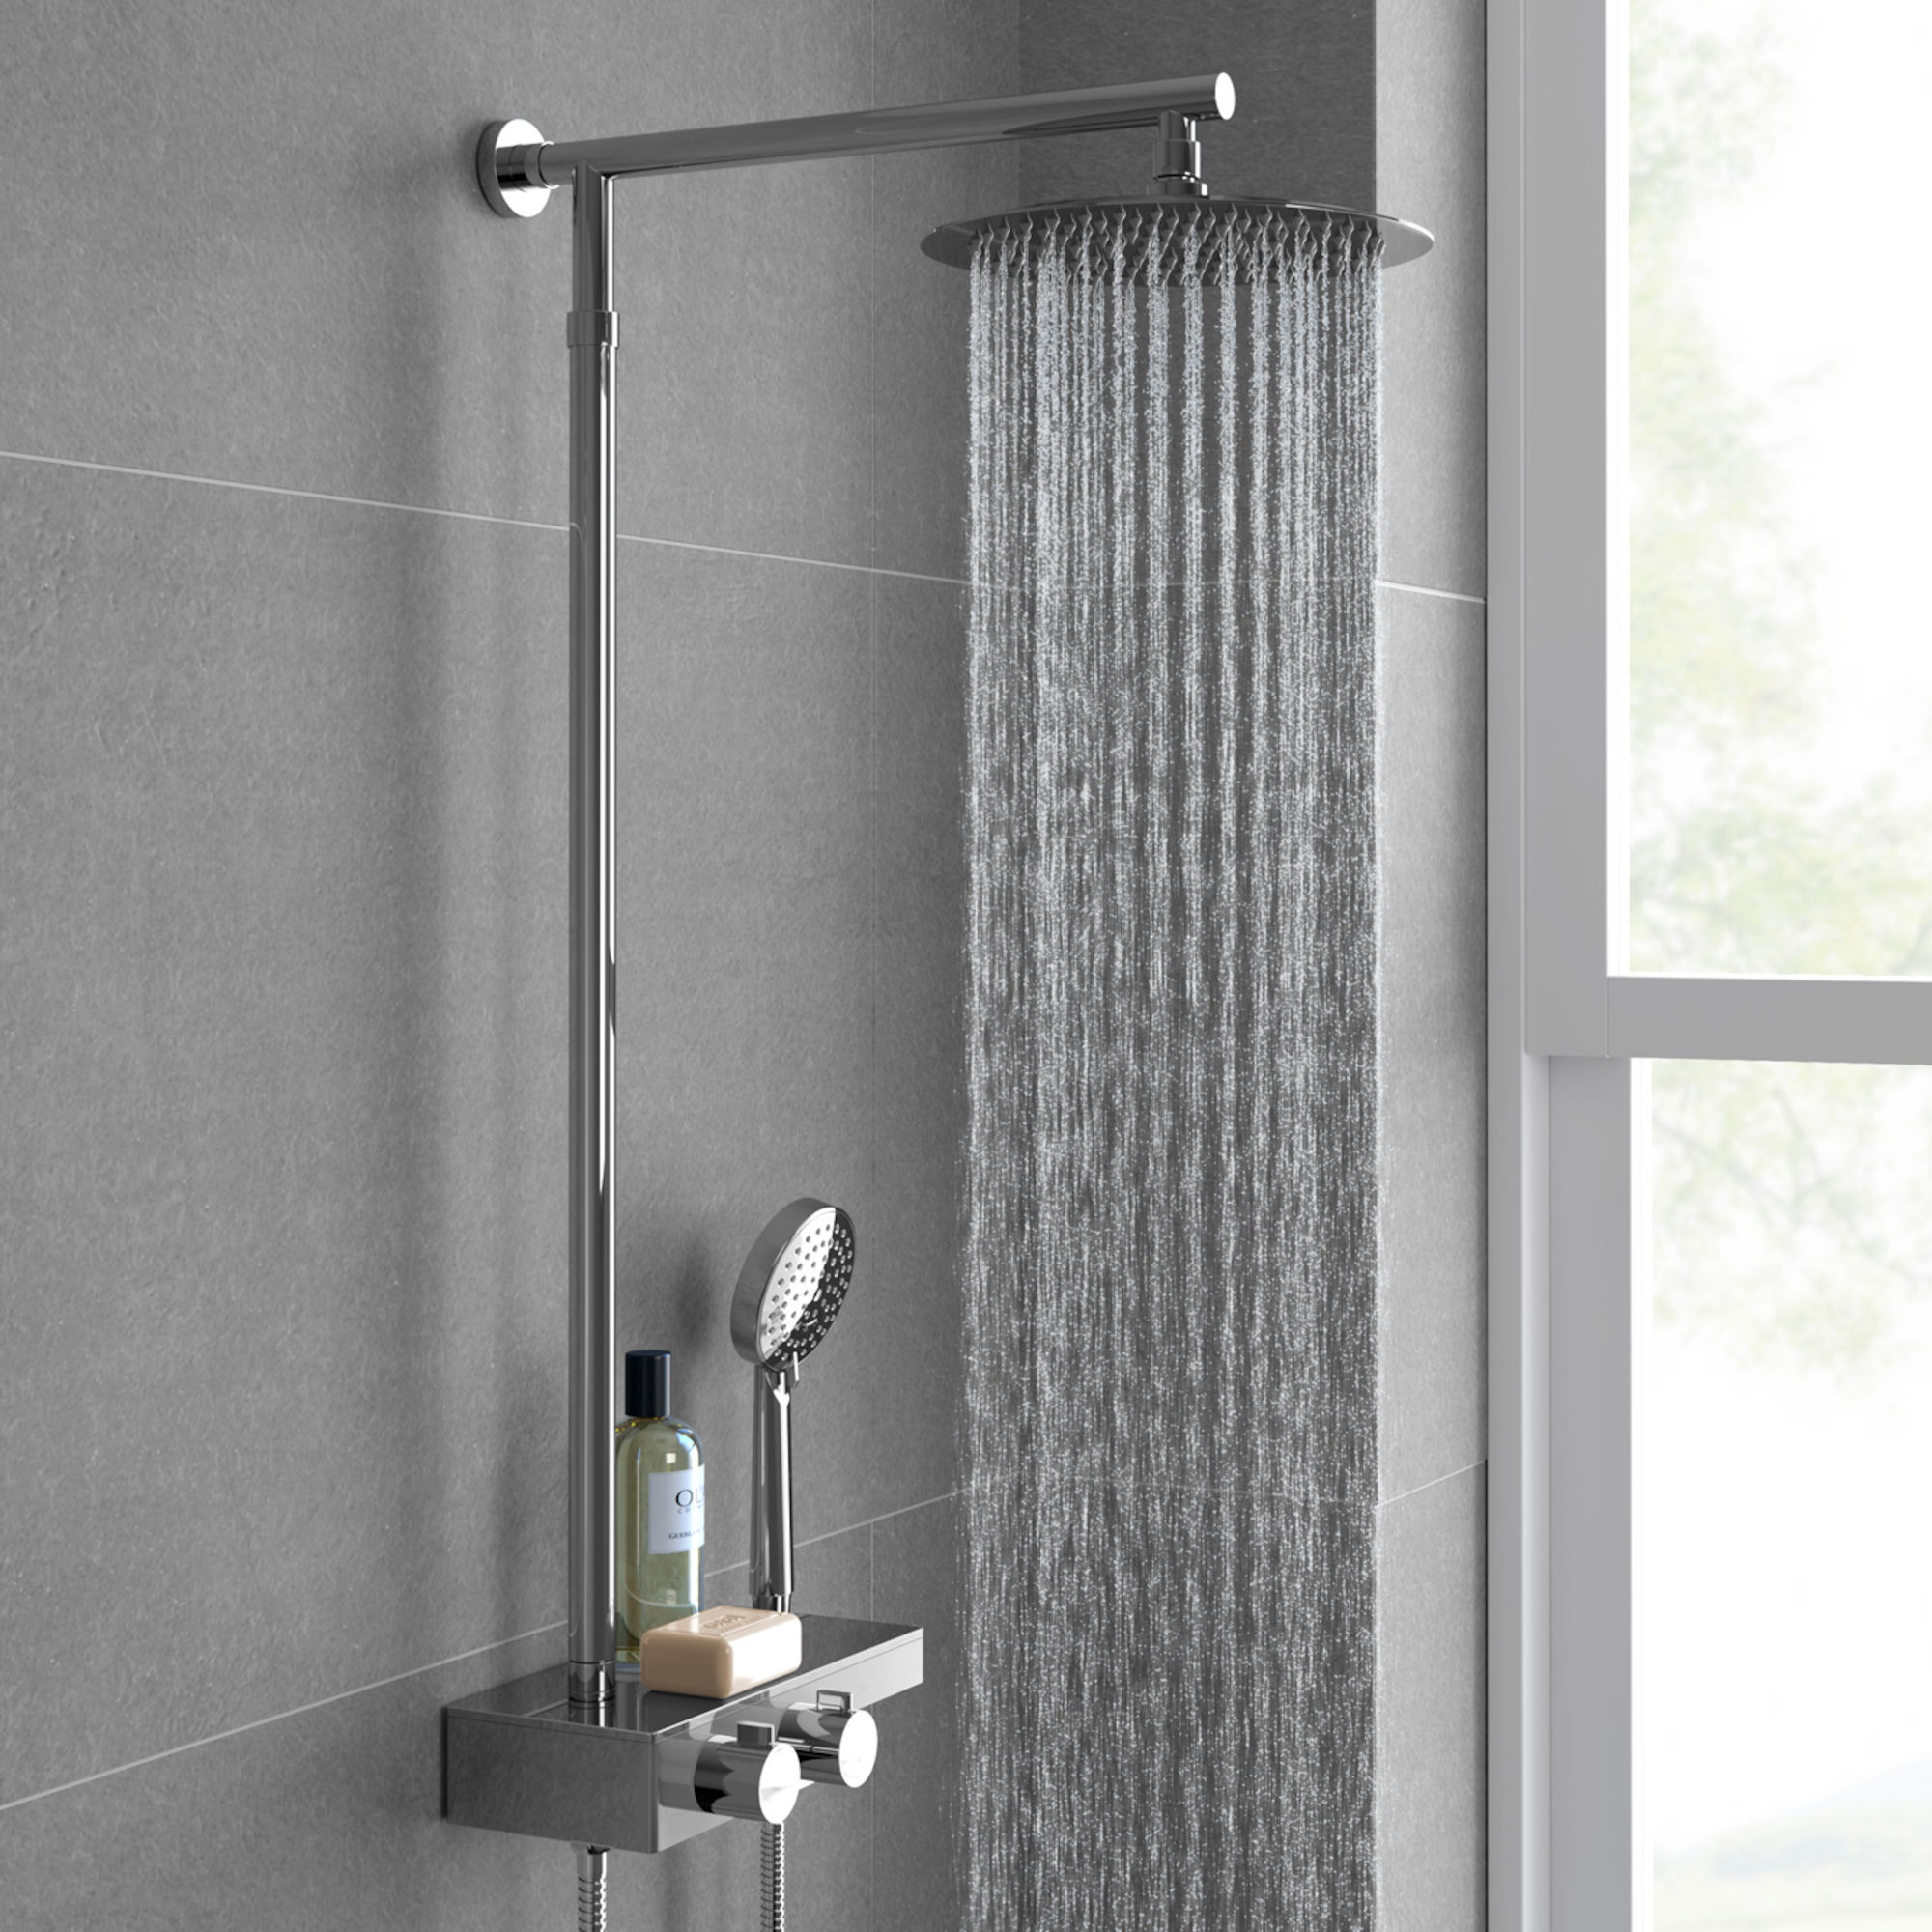 Lot 40 - (SP28) Round Exposed Thermostatic Mixer Shower Kit & Large Head. Cool to touch shower for additional